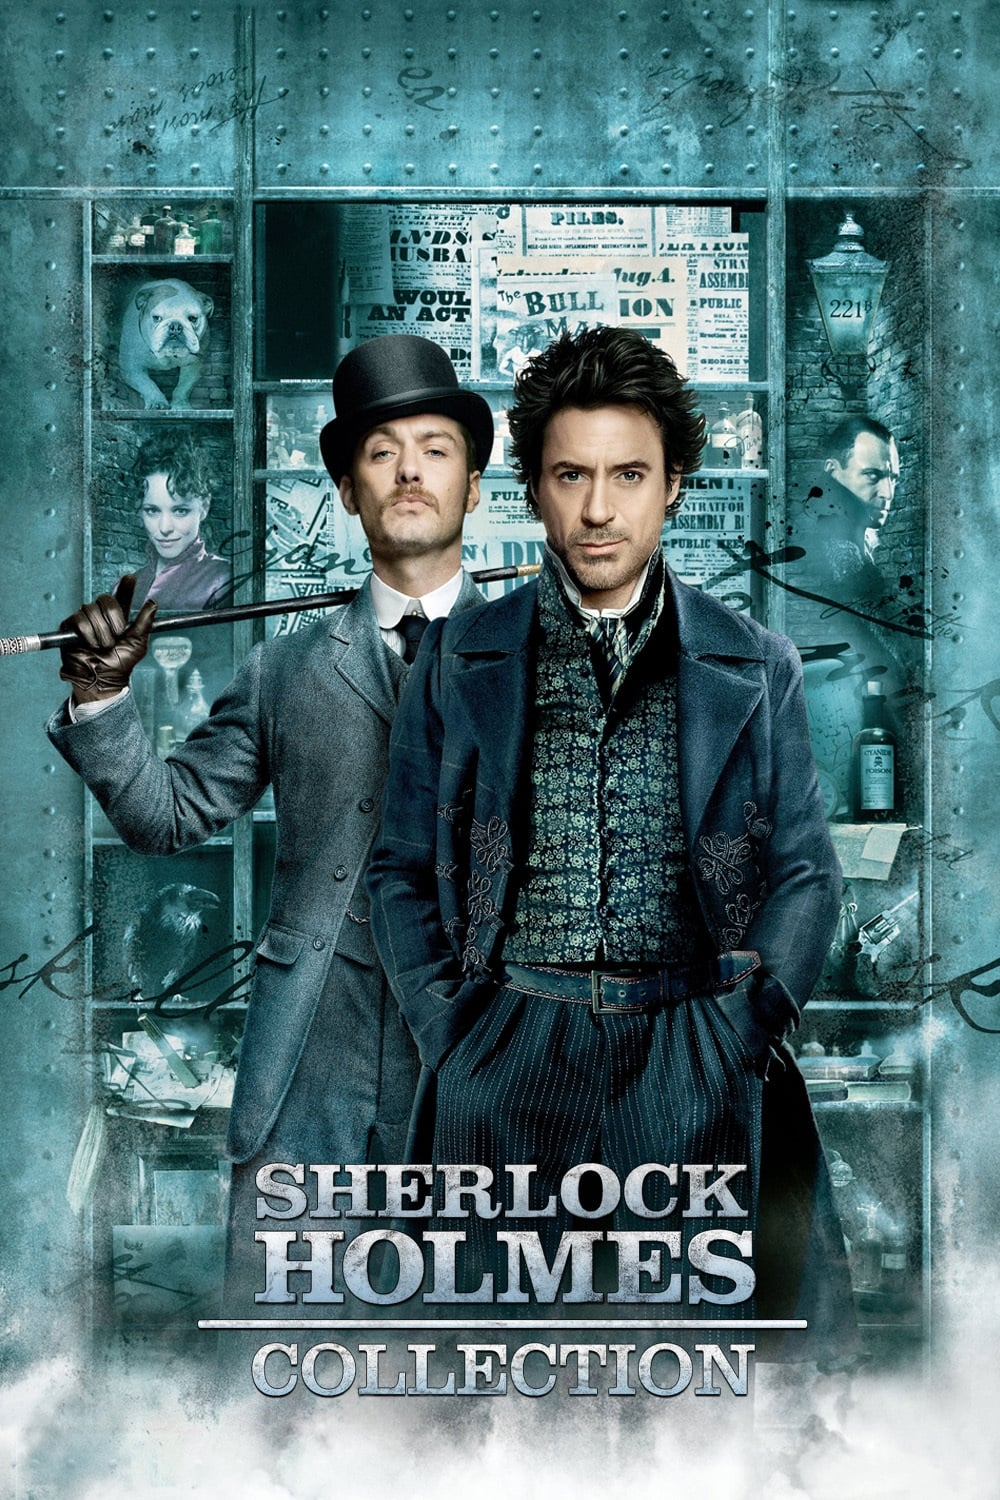 All movies from Sherlock Holmes Collection saga are on